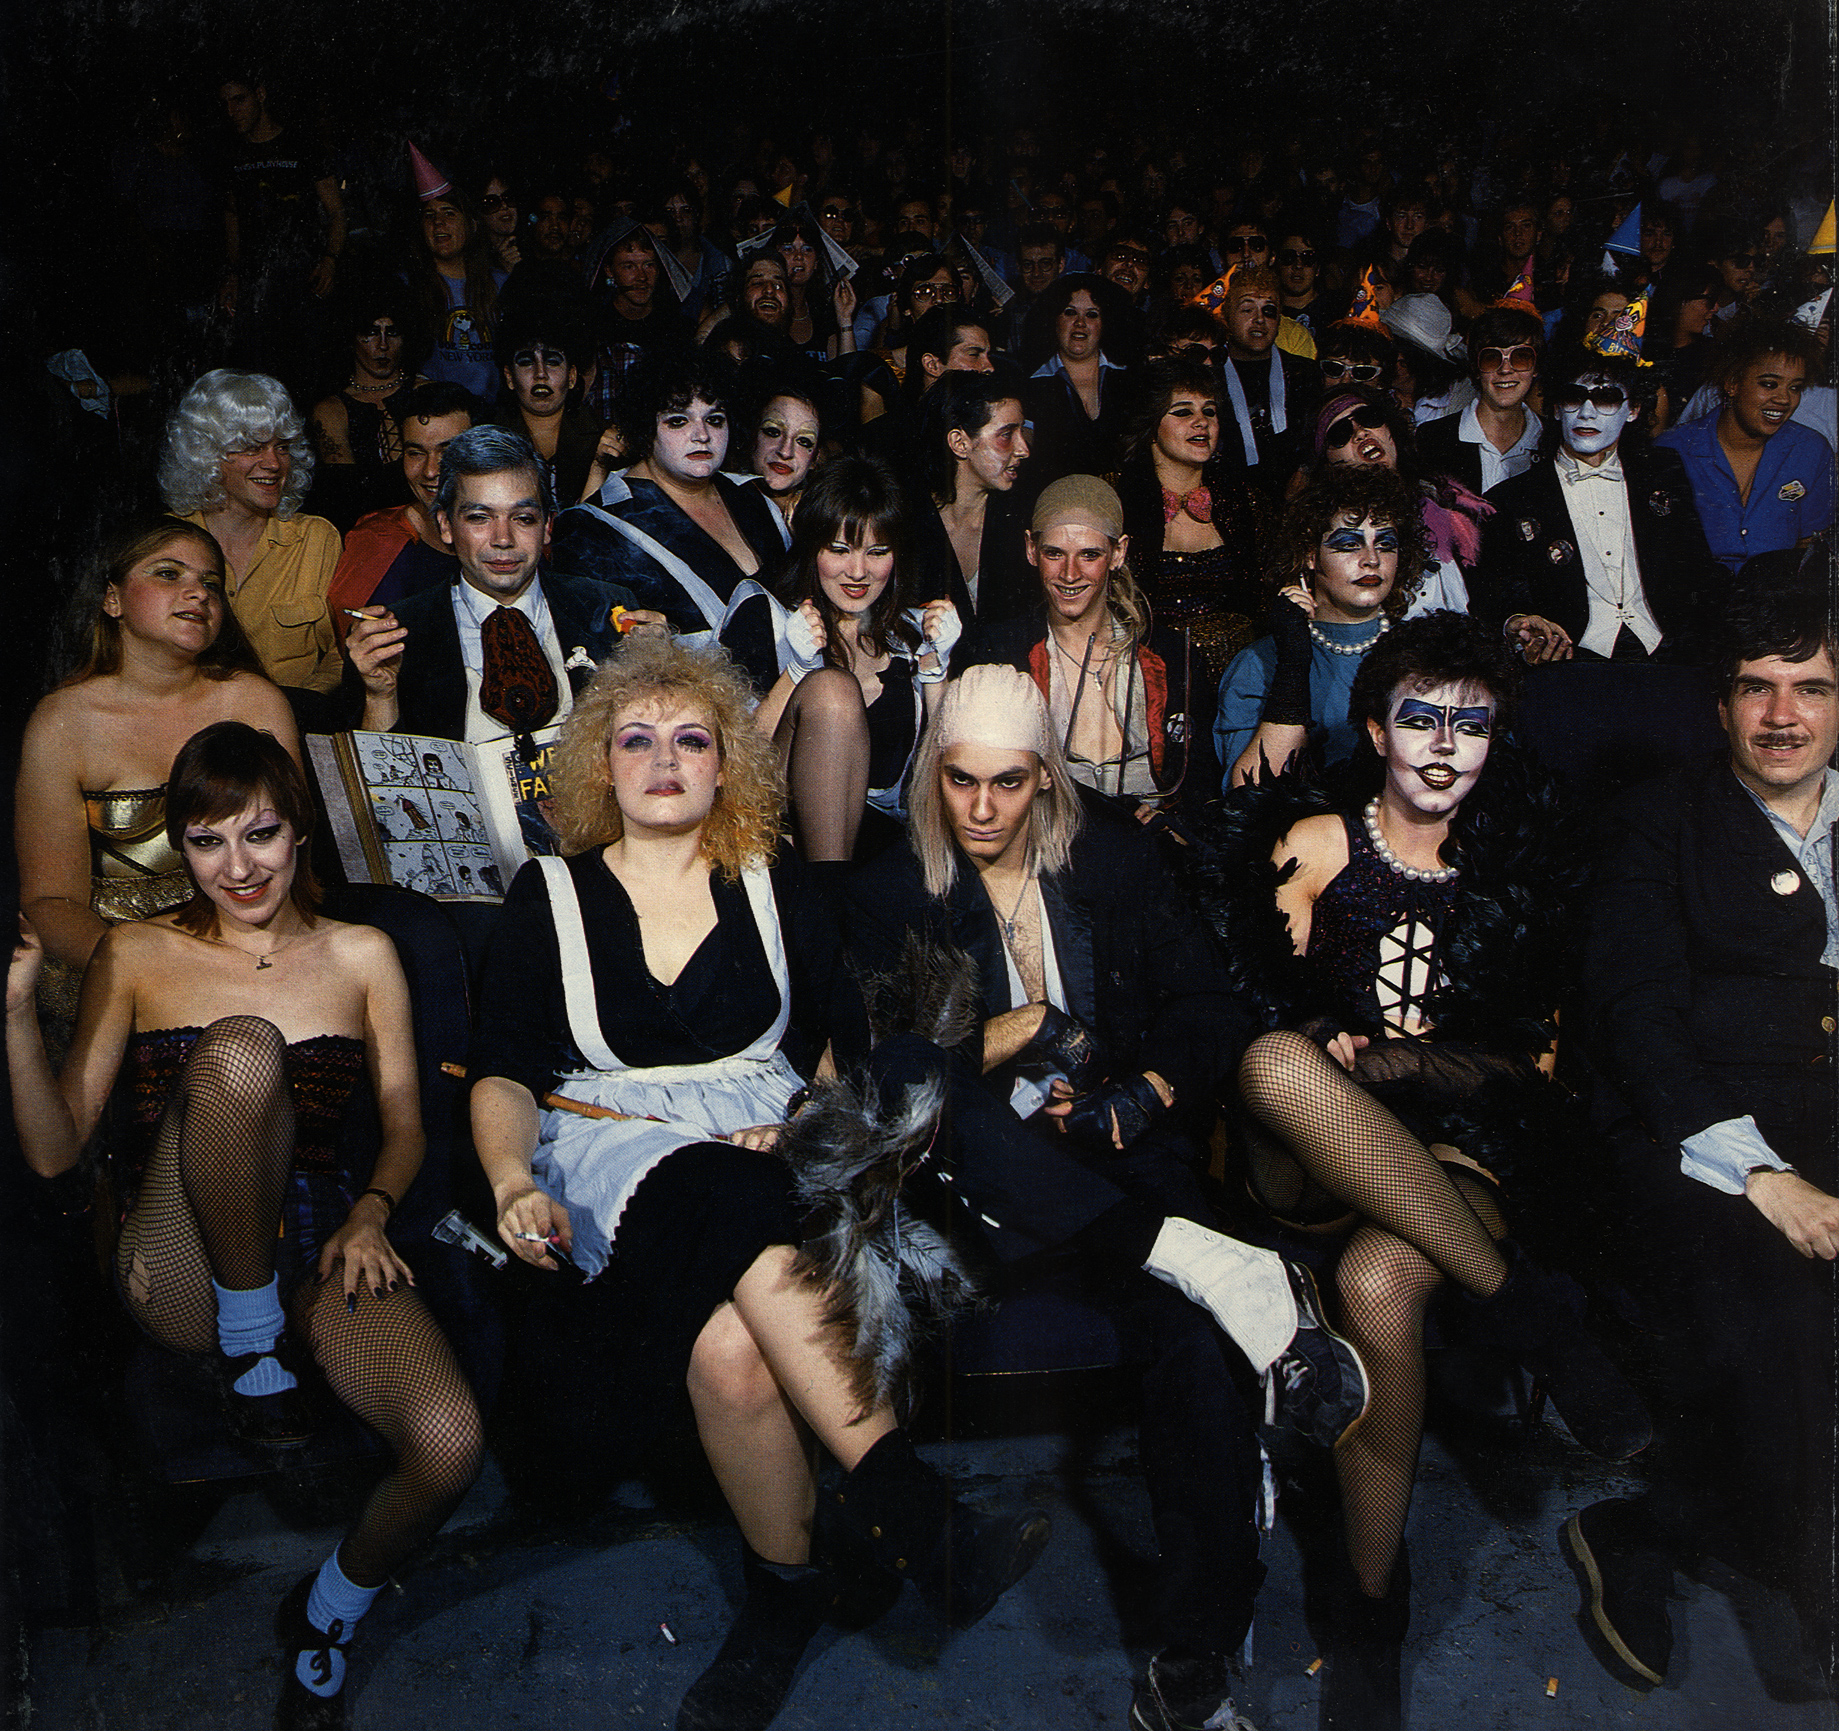 Rocky Horror Picture Show, The - The Time Warp